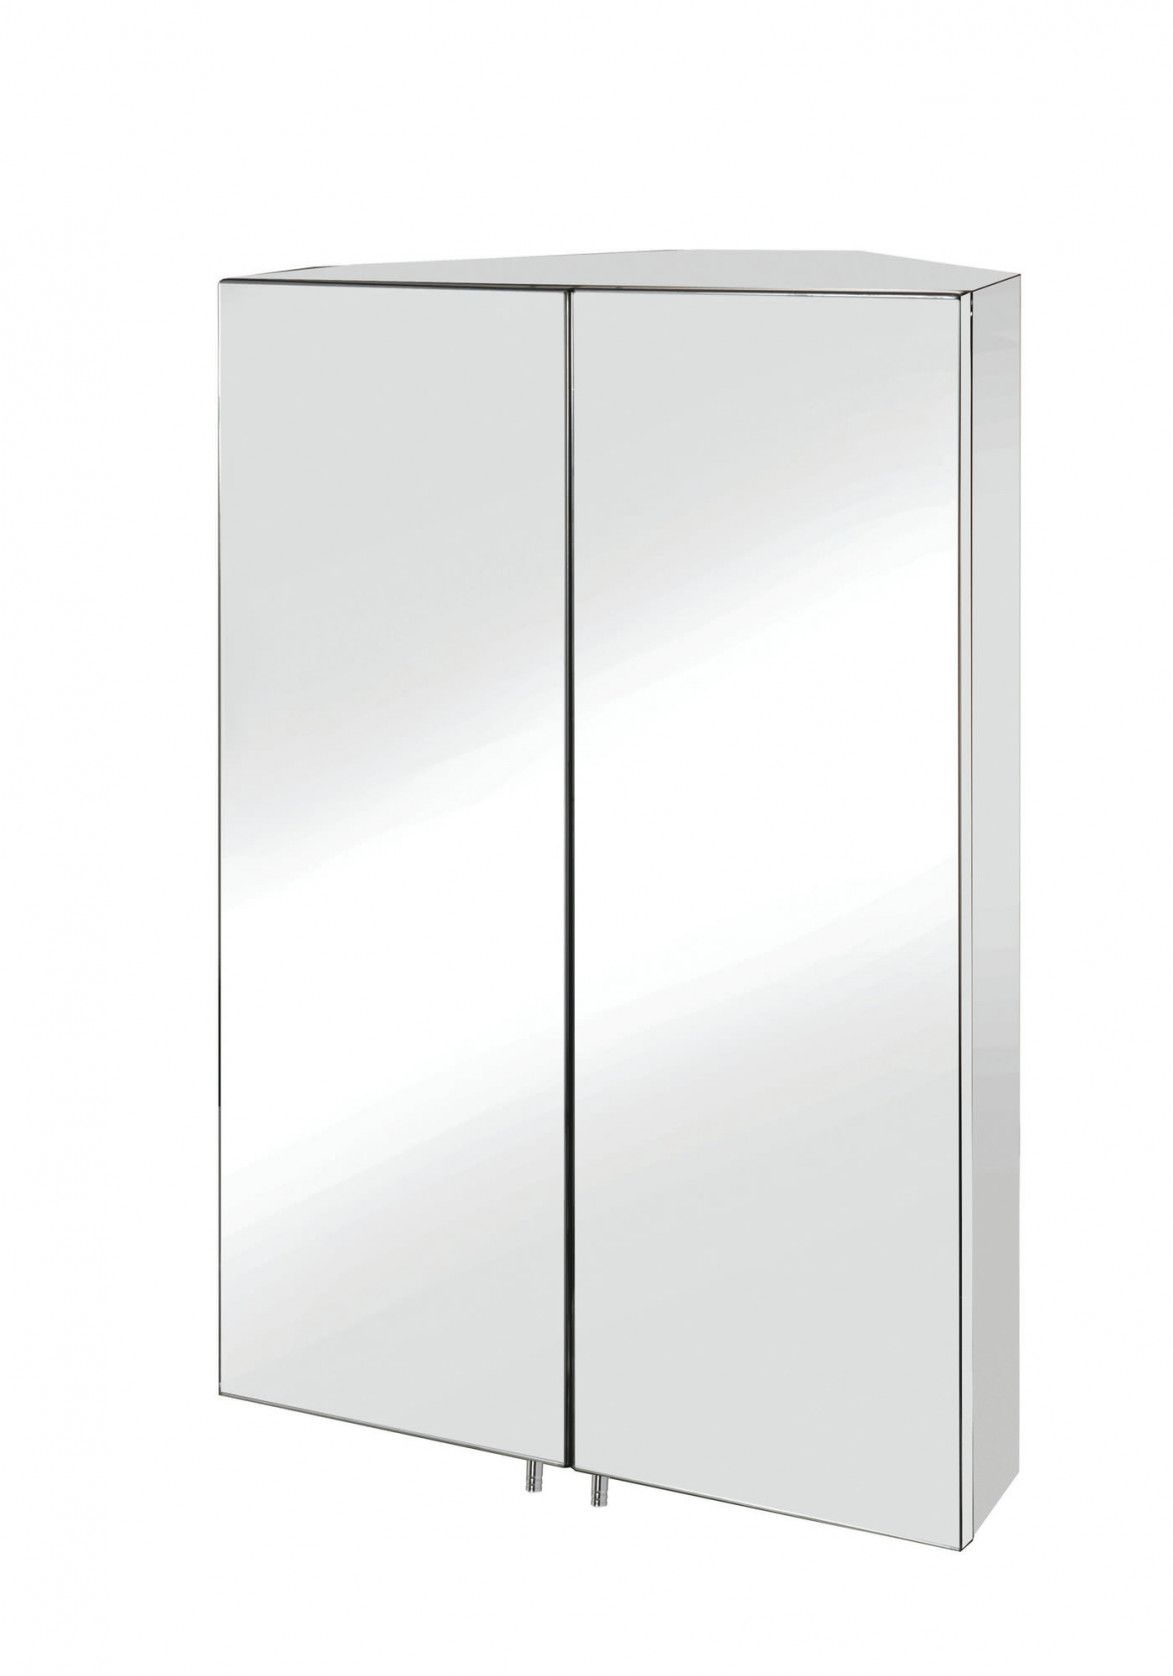 20 Double Door Mirrored Bathroom Cabinet Backsplash for Kitchen